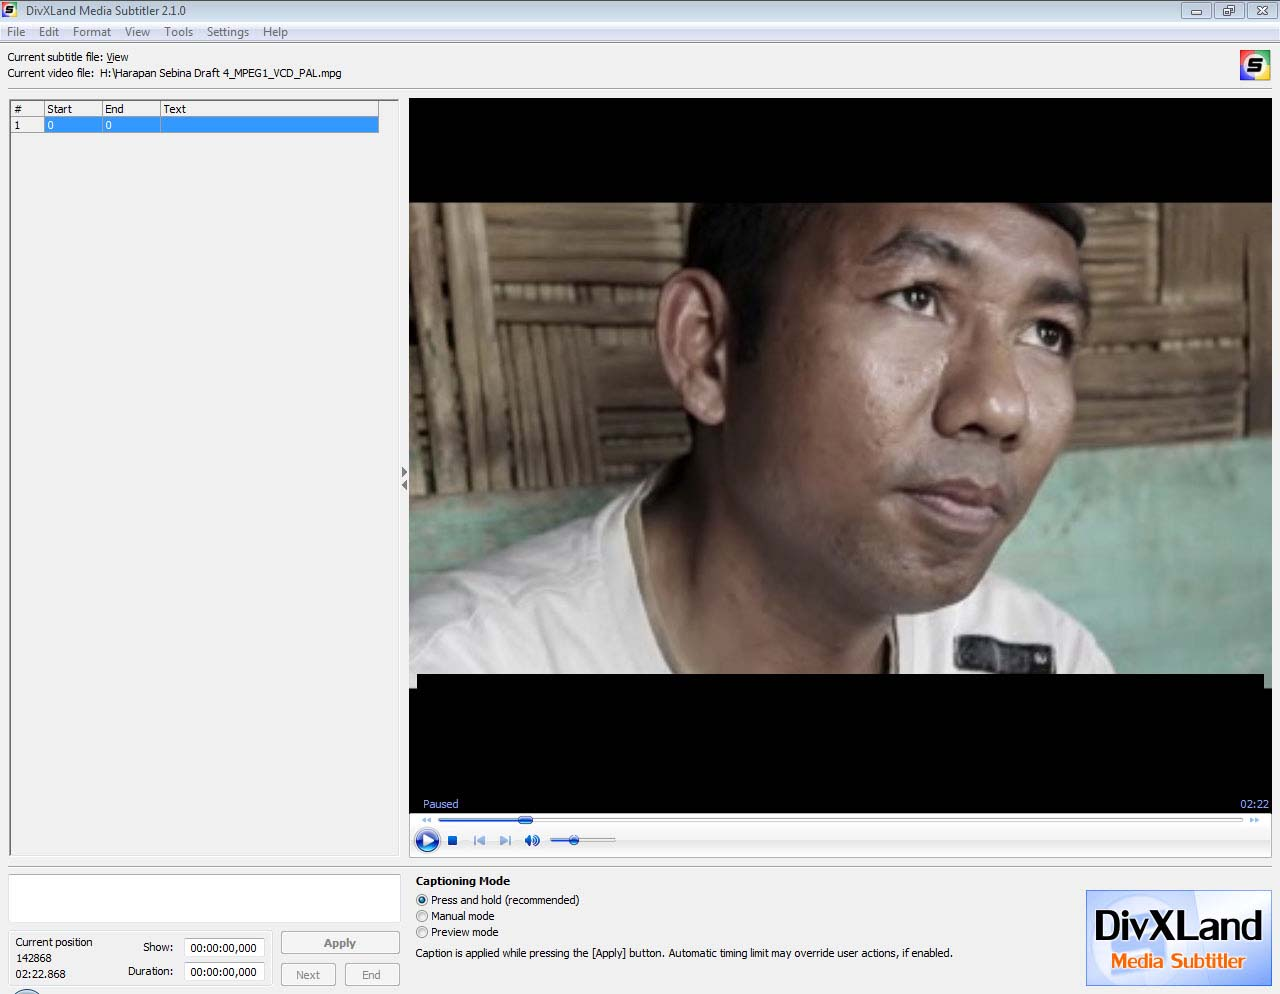 FOR YOU, WHO WANT TO BE A SUBTITLER, YOU CAN USE THESE SOFTWARE